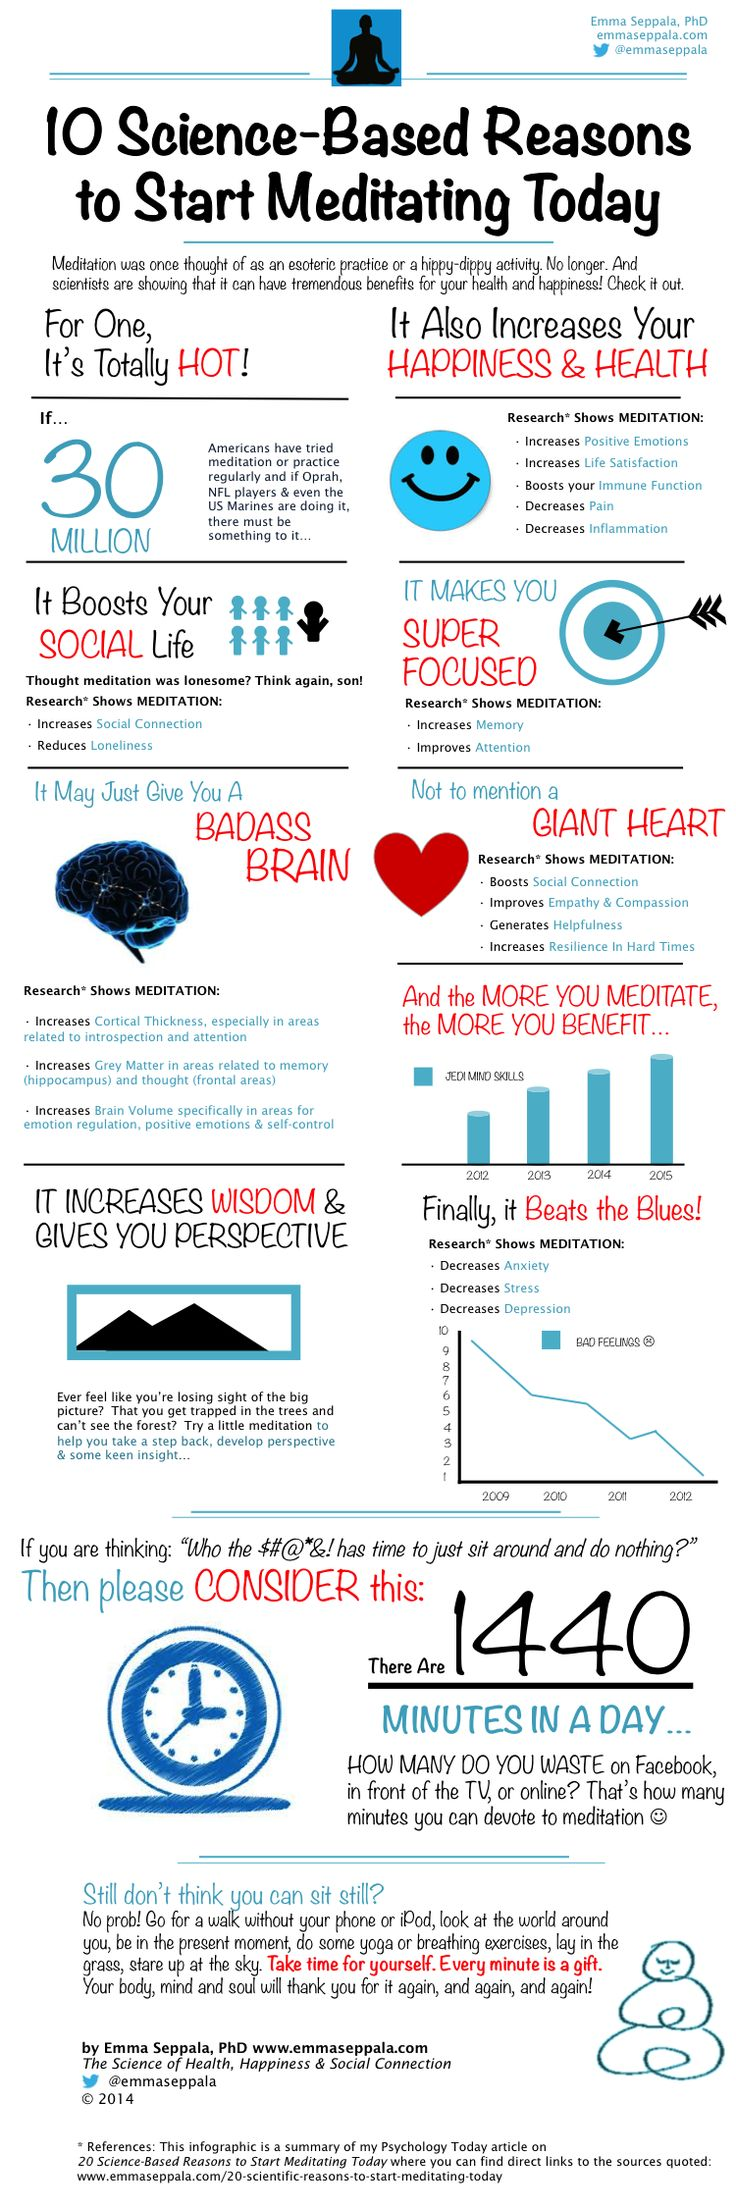 Meditation Infograph. I bet meditation helps balance life and work.